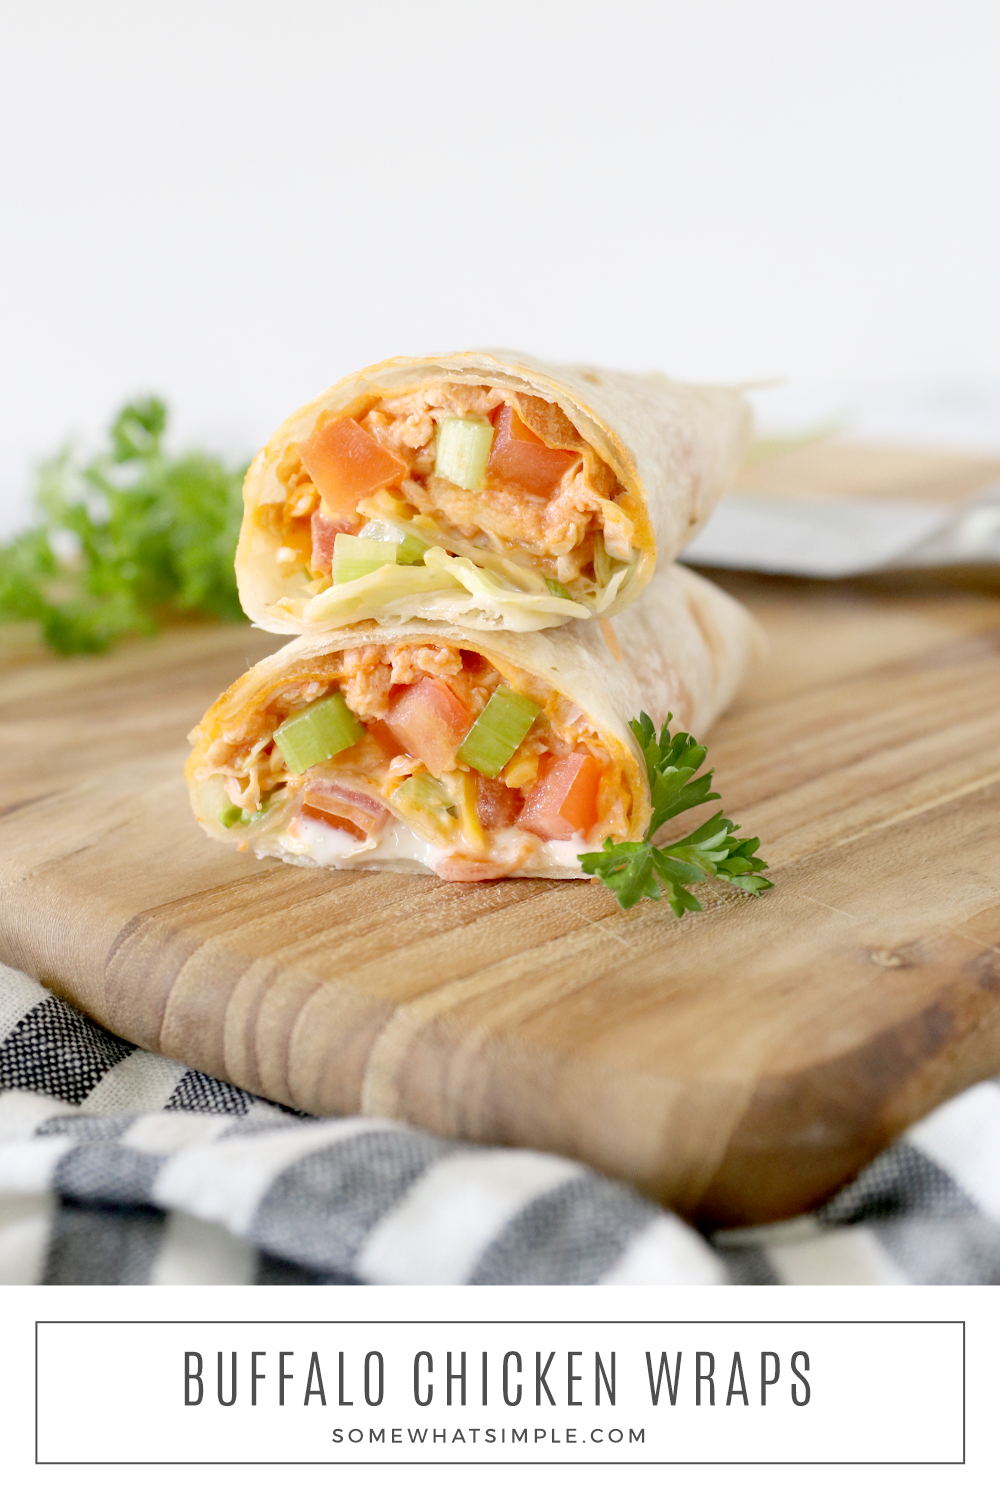 Buffalo Chicken Wraps are stuffed with zesty buffalo chicken, crunchy vegetables, shredded cheese, and ranch dressing. They're creamy, totally delicious, and they can be made in 5 minutes or less! via @somewhatsimple